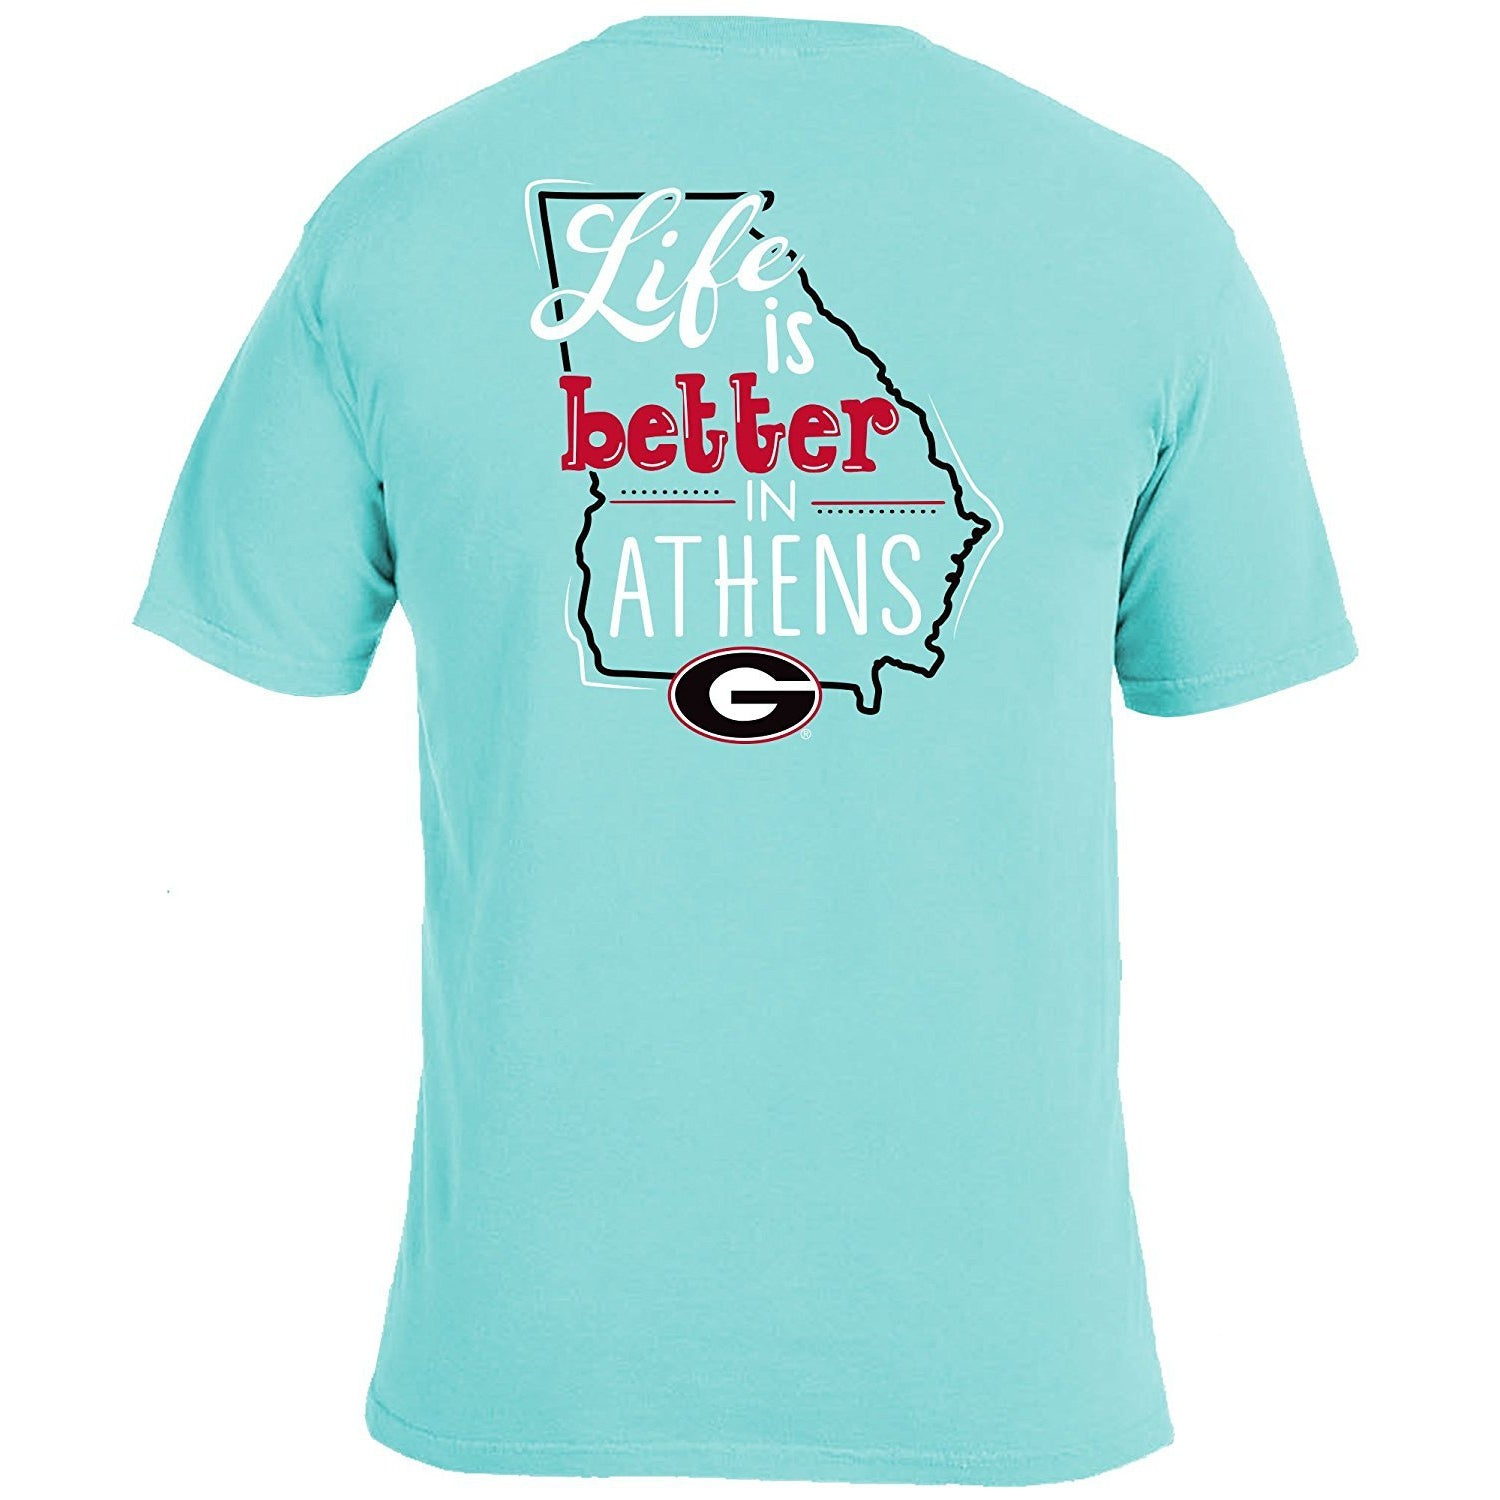 Life Is Better T-Shirt - Georgia - Southern Ivy Boutique